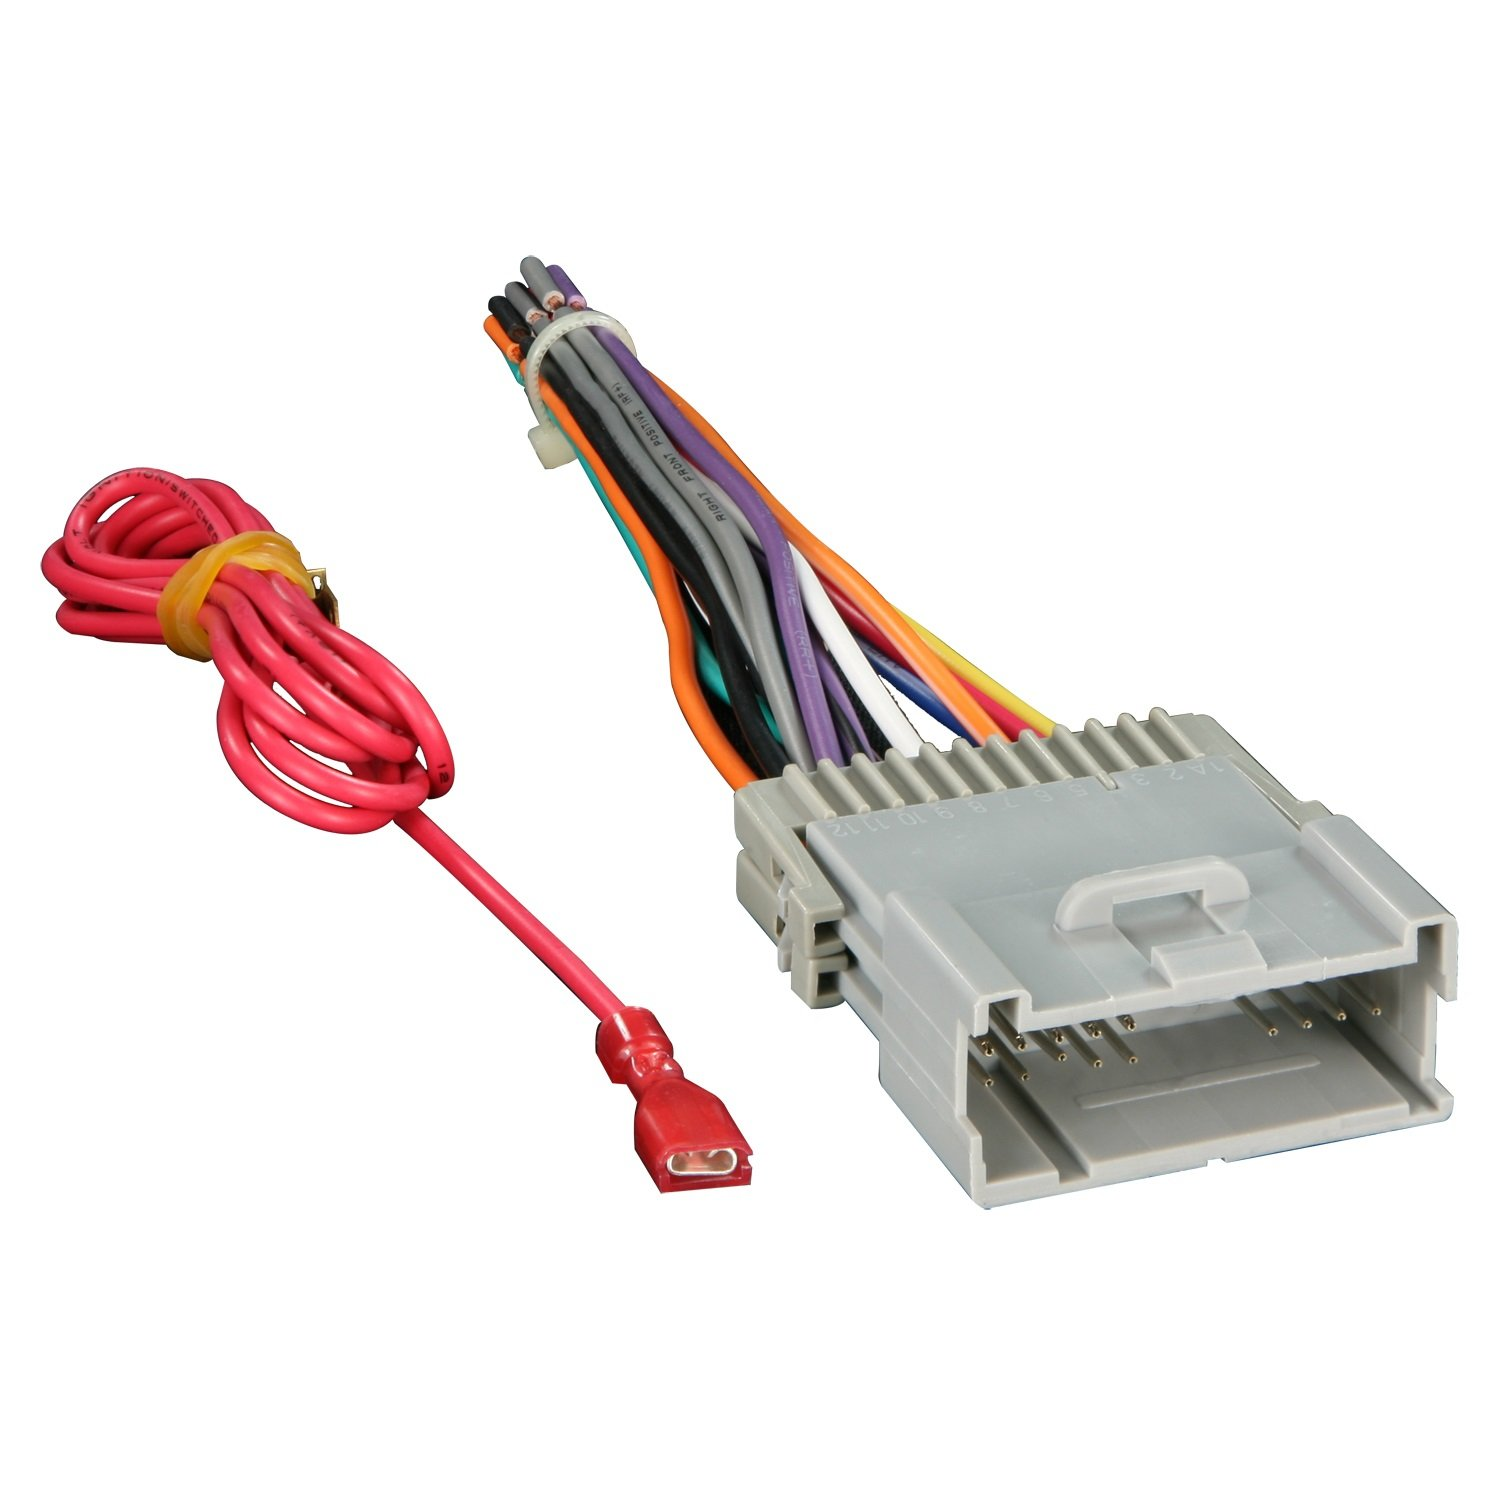 61eewxp9orL._SL1500_ amazon com metra 70 2003 radio wiring harness for gm 98 08 Honduras Auto Mobile Wire Harness at reclaimingppi.co